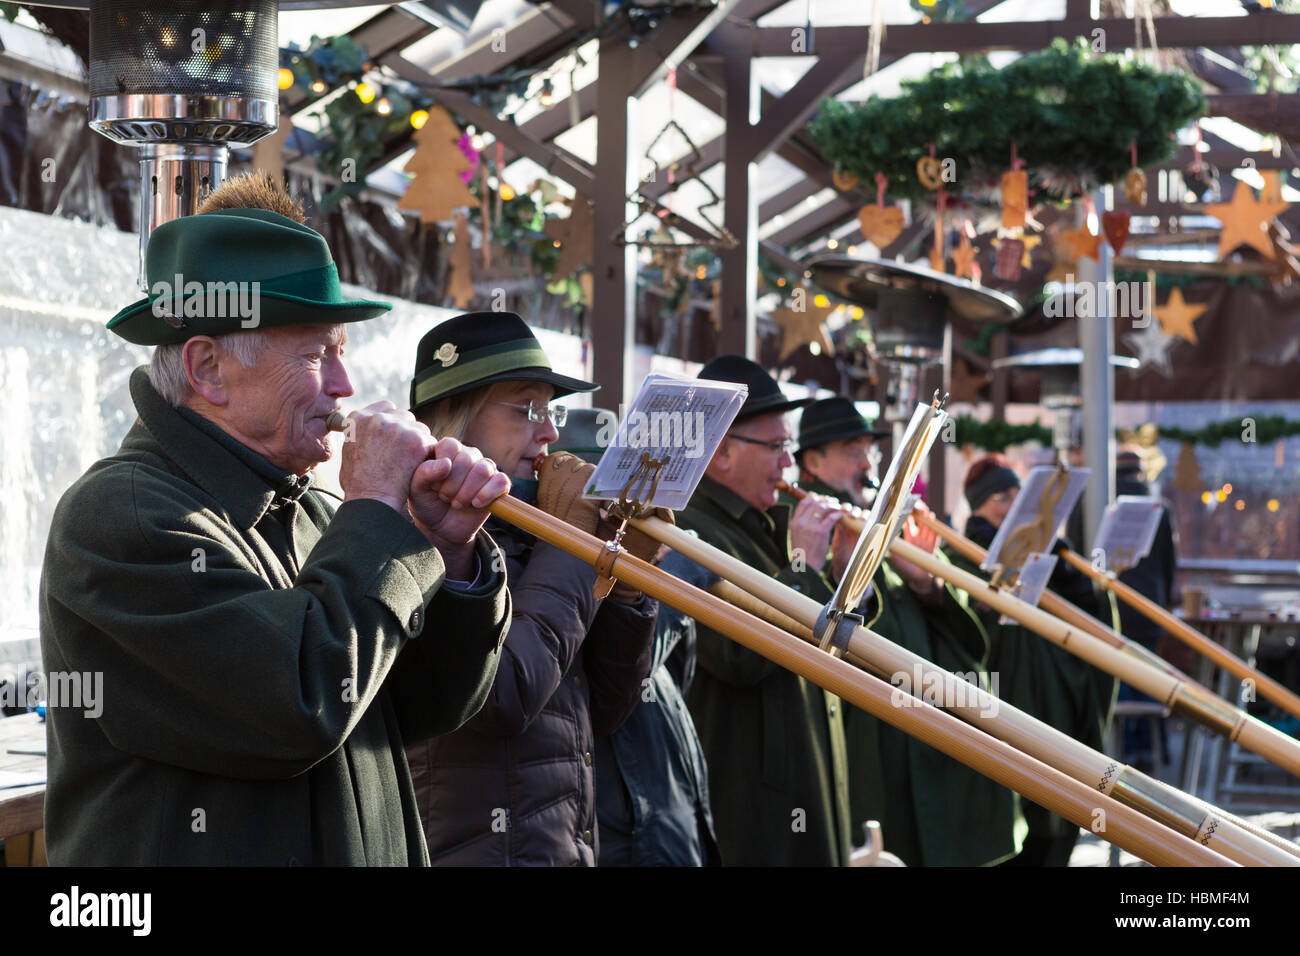 Musicians playing alphorns in Möchengladbach's Christmas market - Stock Image